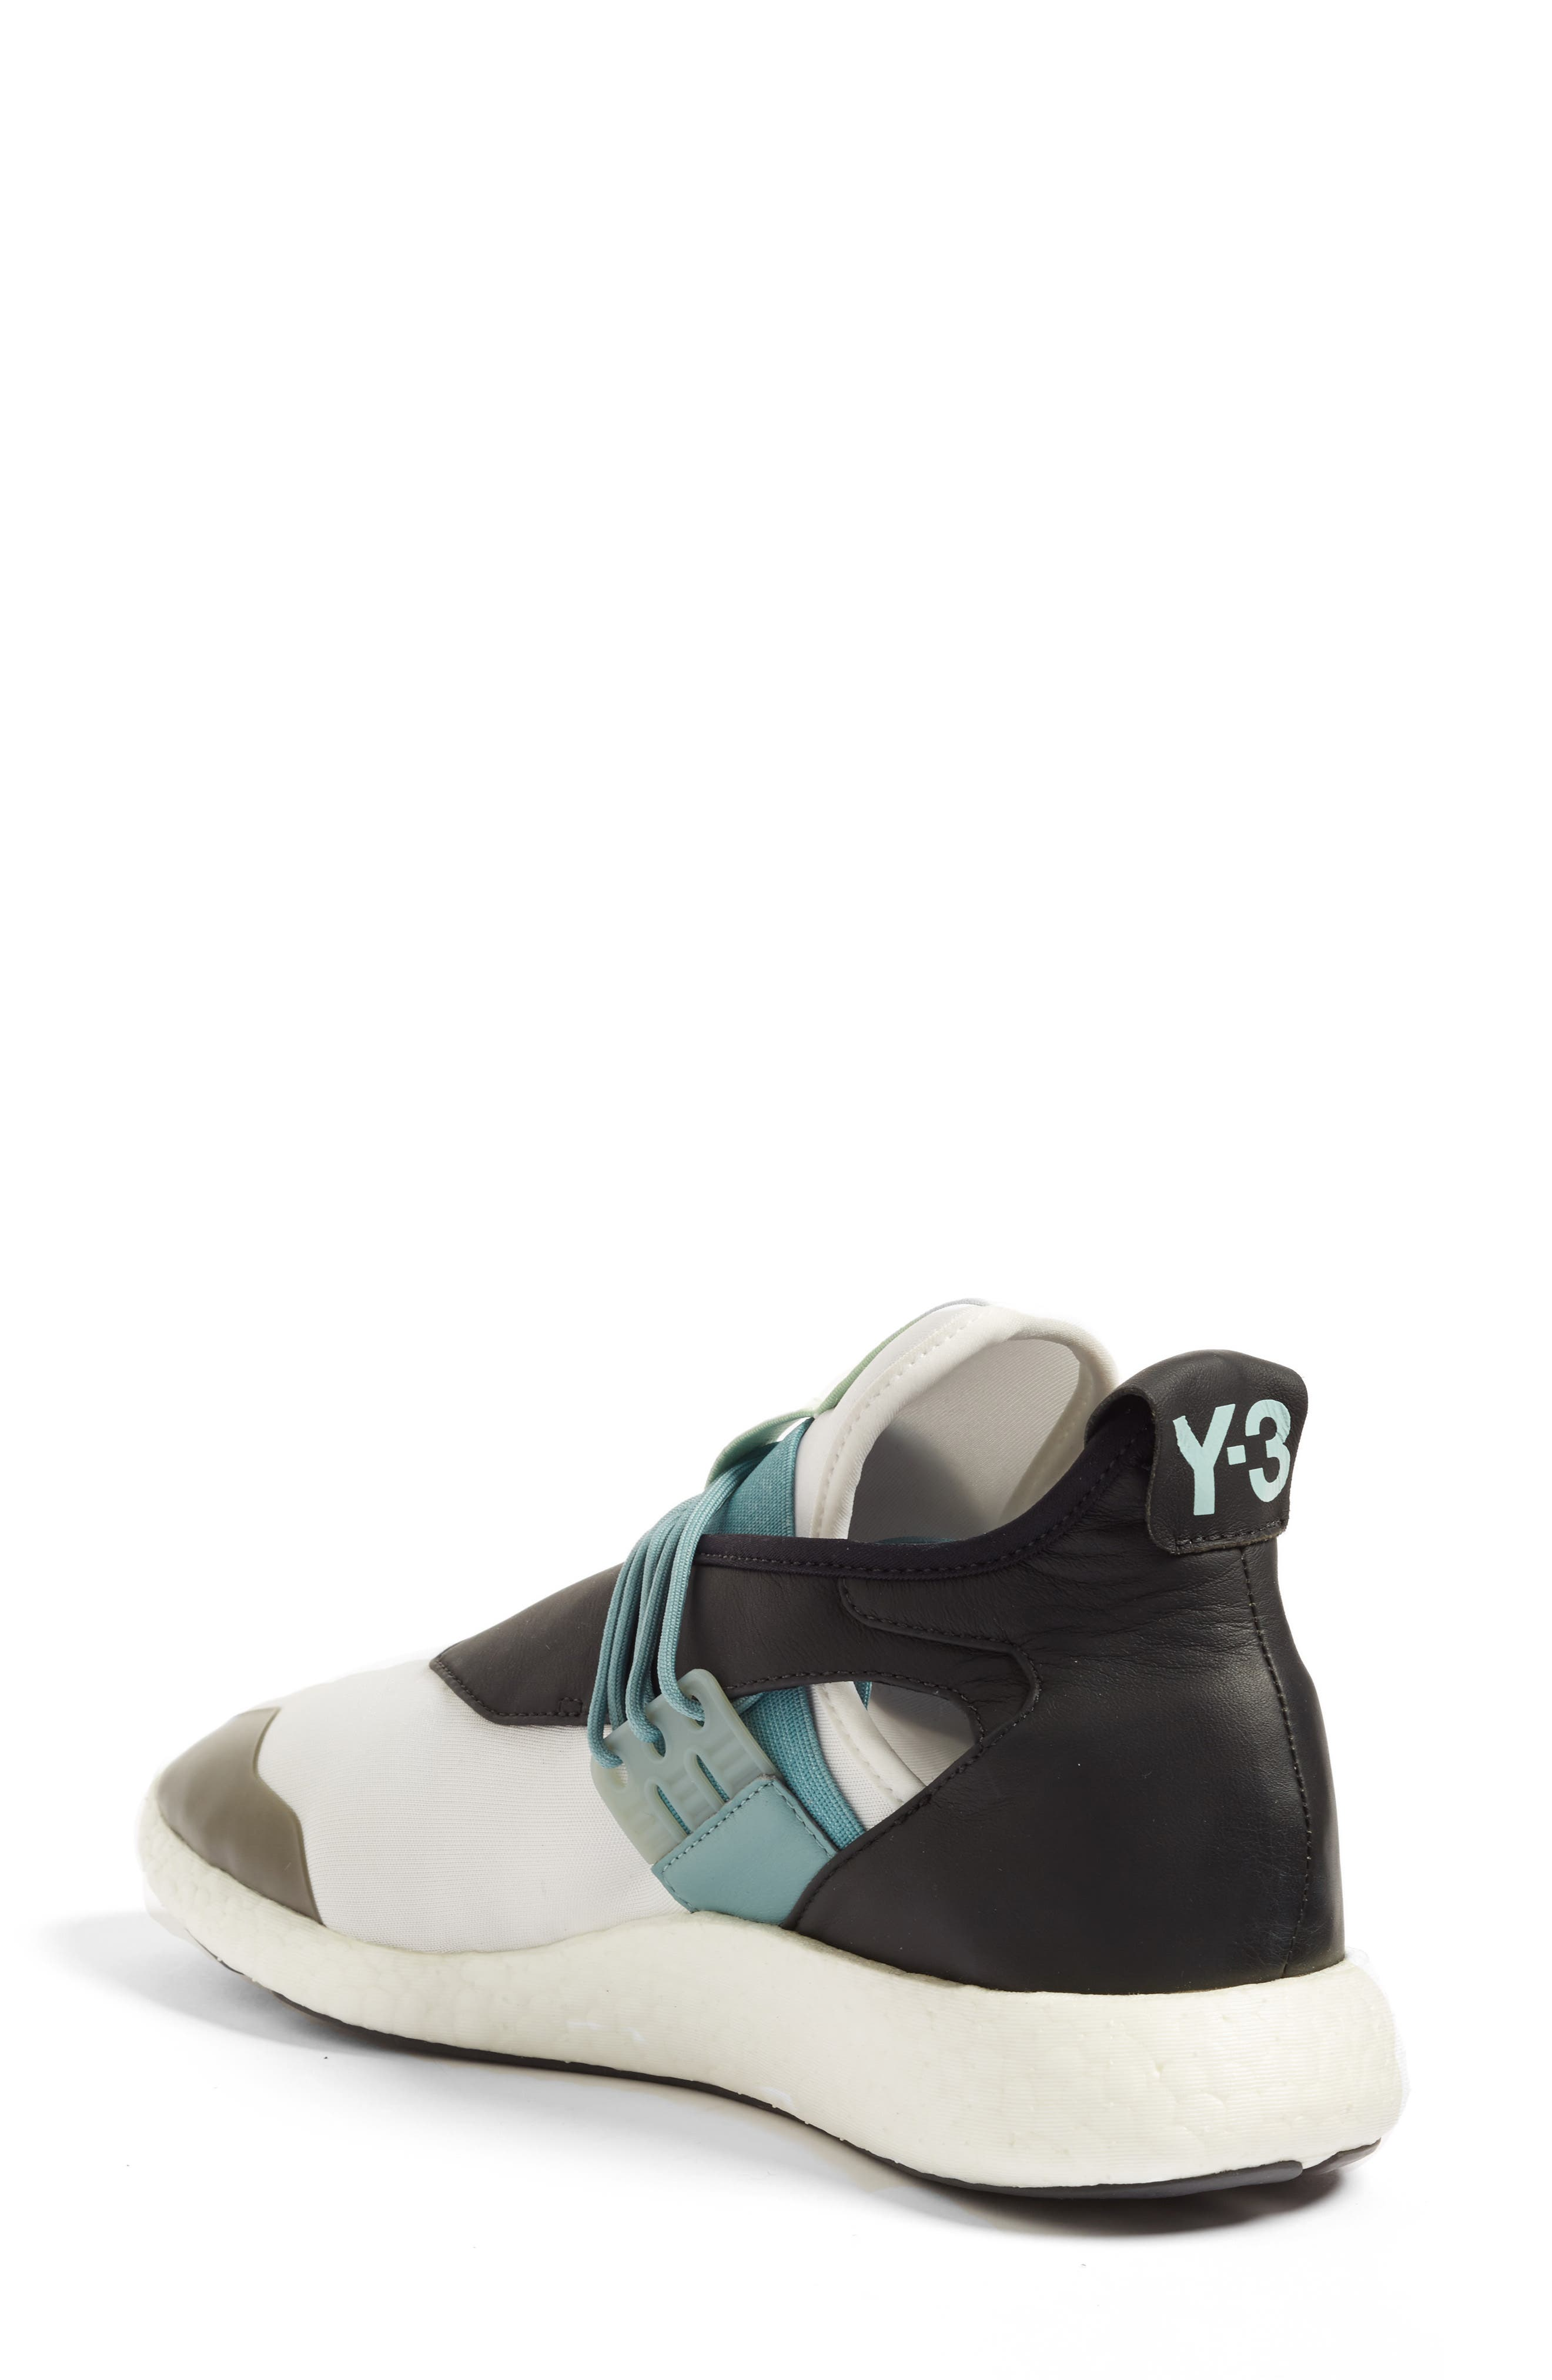 Elle Run Sneaker,                             Alternate thumbnail 7, color,